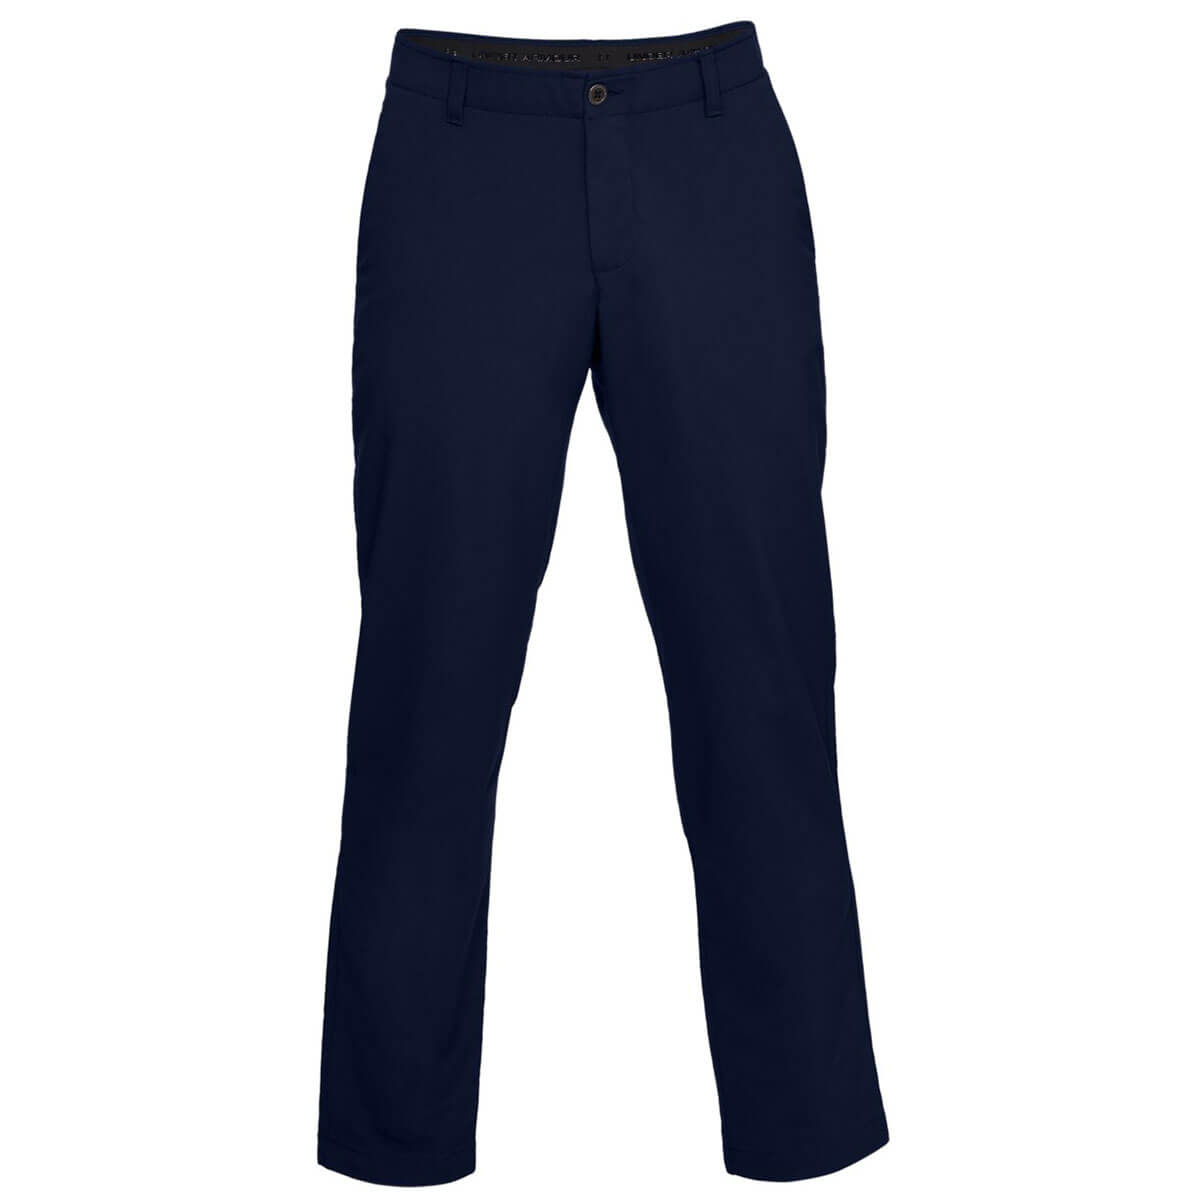 Under-Armour-Mens-2019-EU-Performance-Slim-Taper-Soft-Stretch-Golf-Trousers thumbnail 4